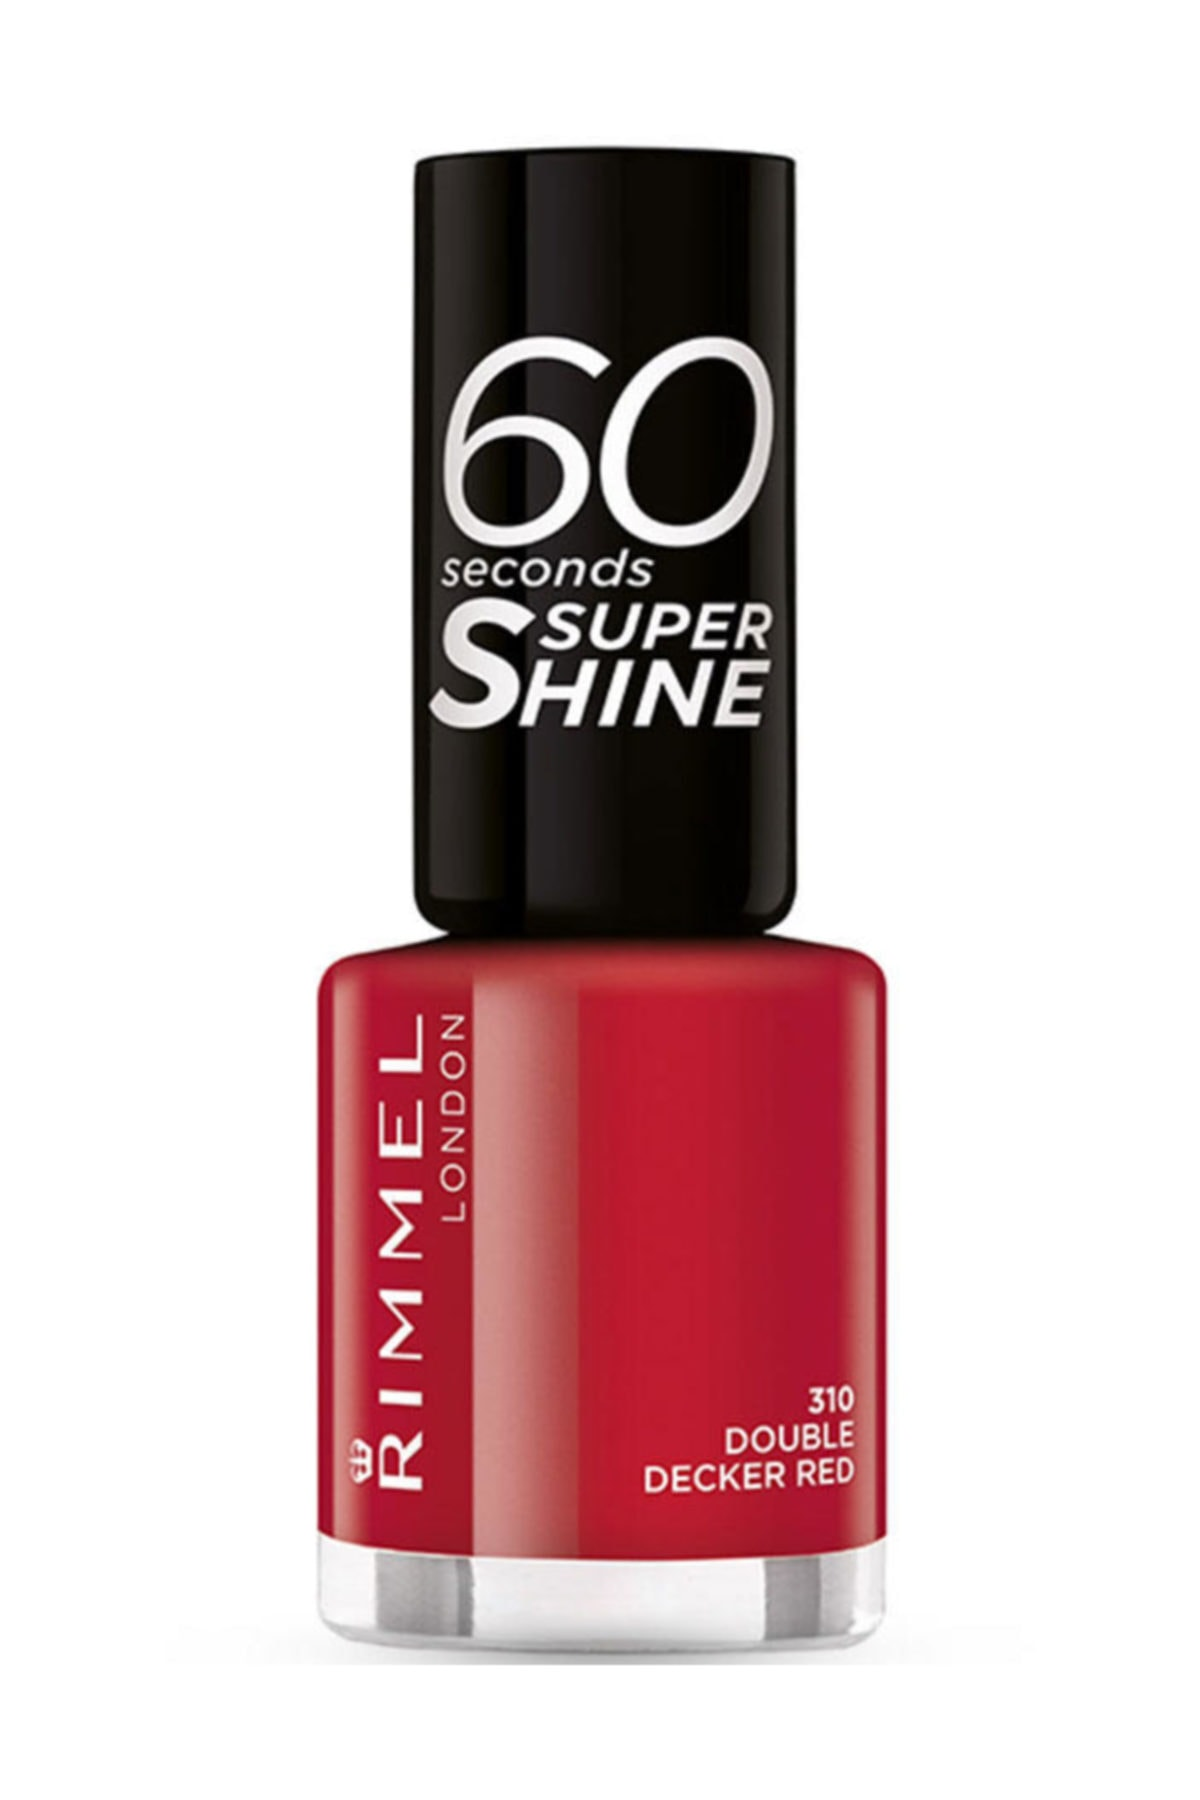 RIMMEL LONDON 60 Saniyede Kuruyan Oje - 60 Seconds Super Shine 310 Double Decker Red 3614220616834 1